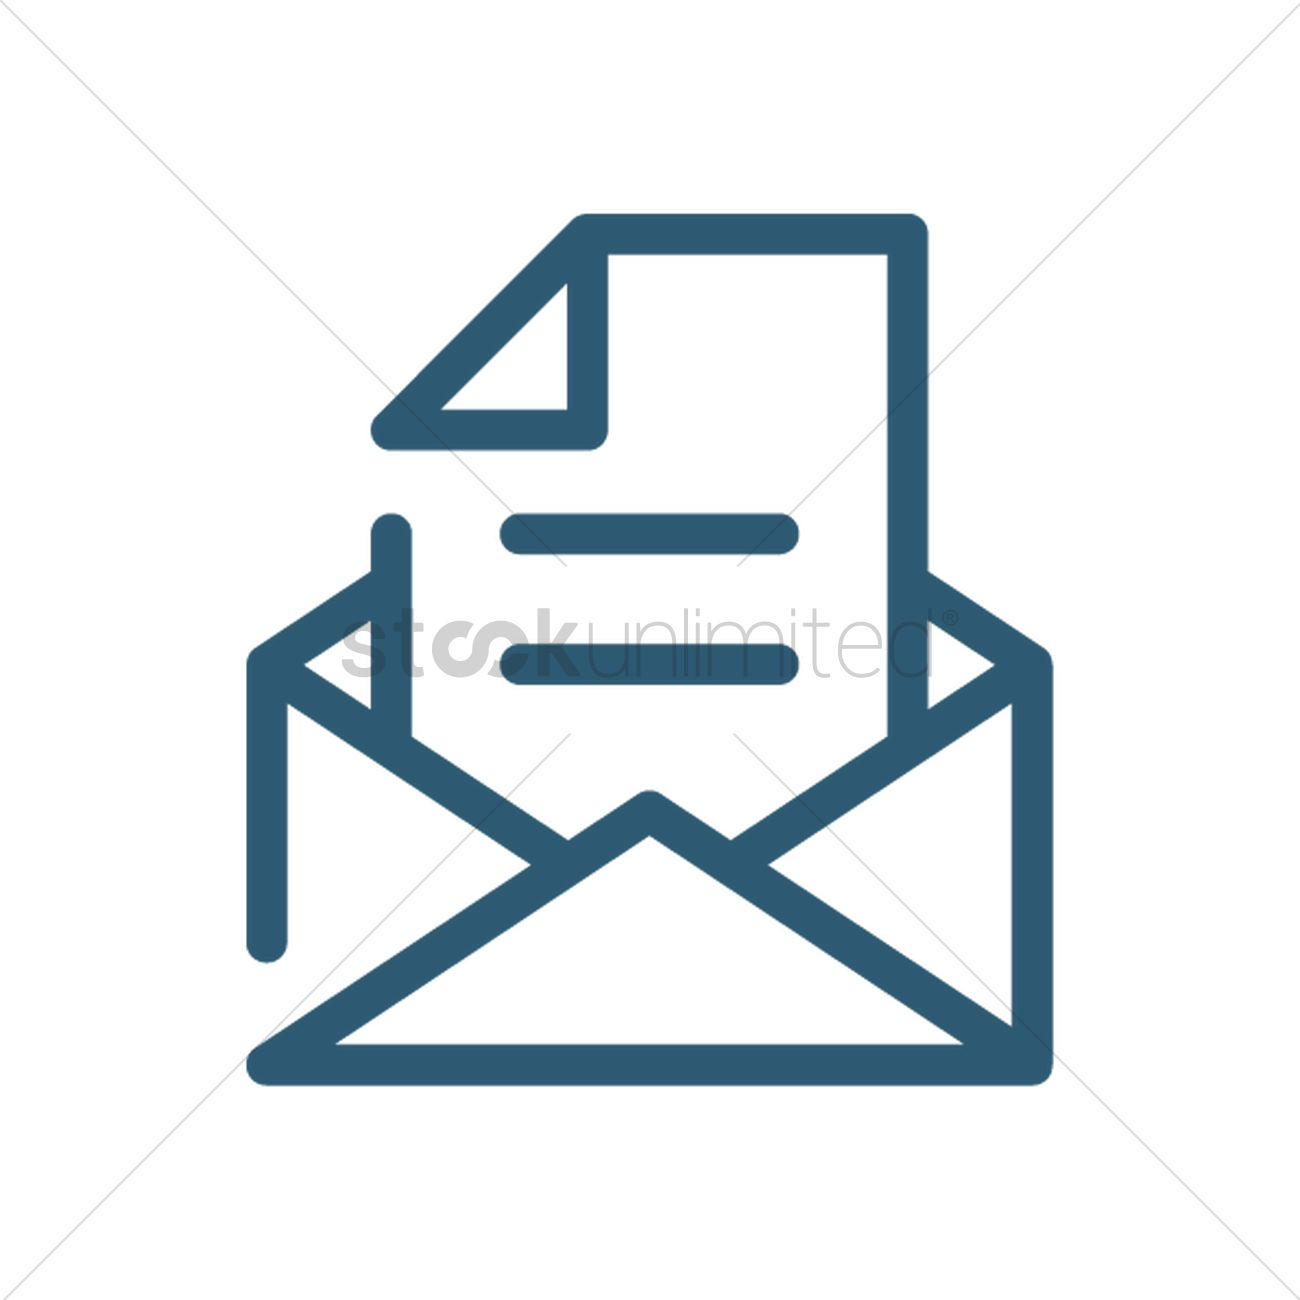 Email Symbol Vector Image 2033186 Stockunlimited